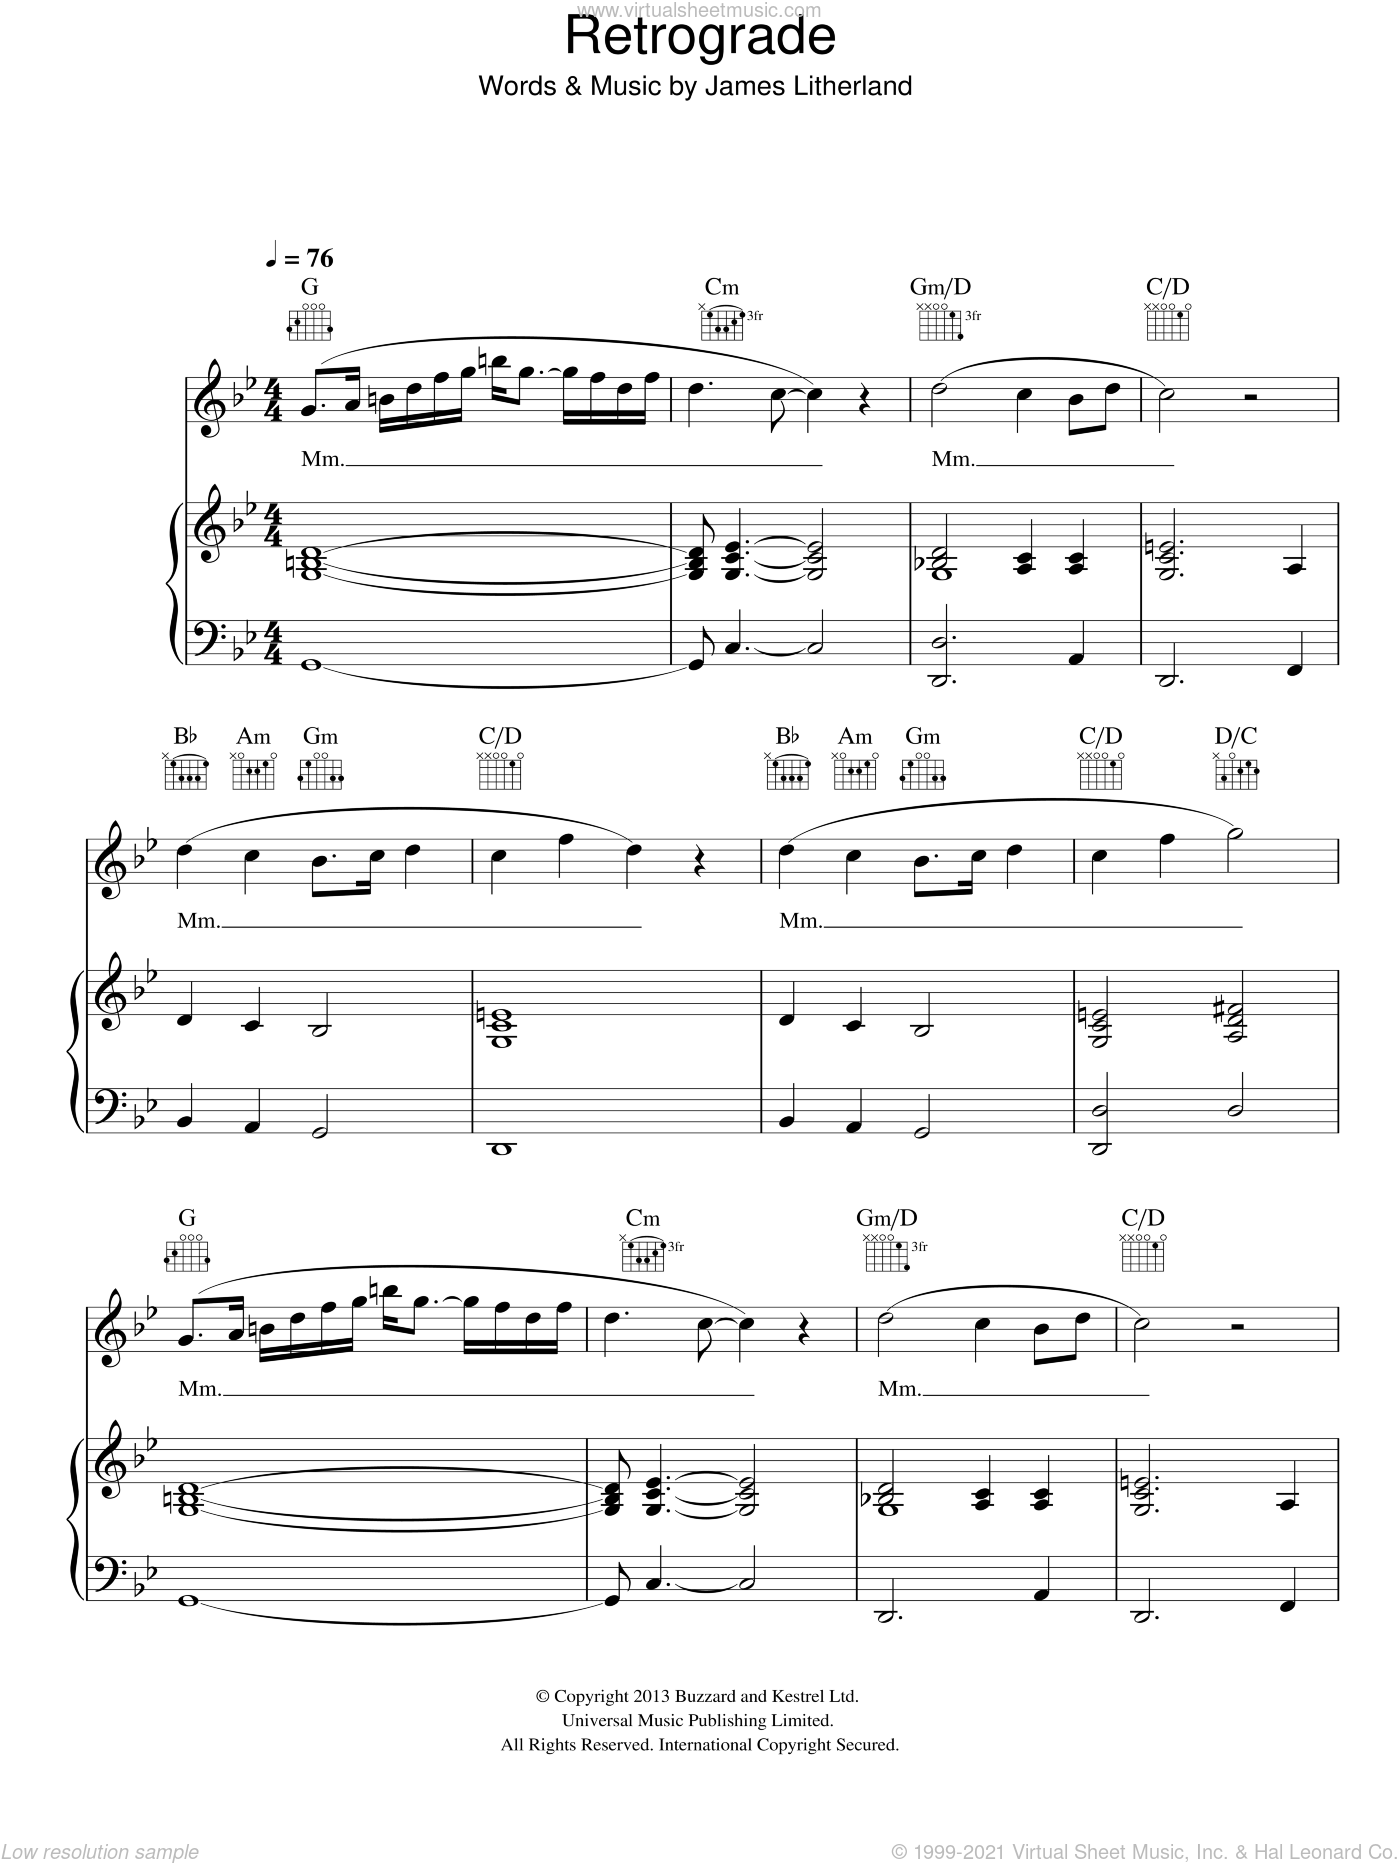 Retrograde sheet music for voice, piano or guitar by James Litherland